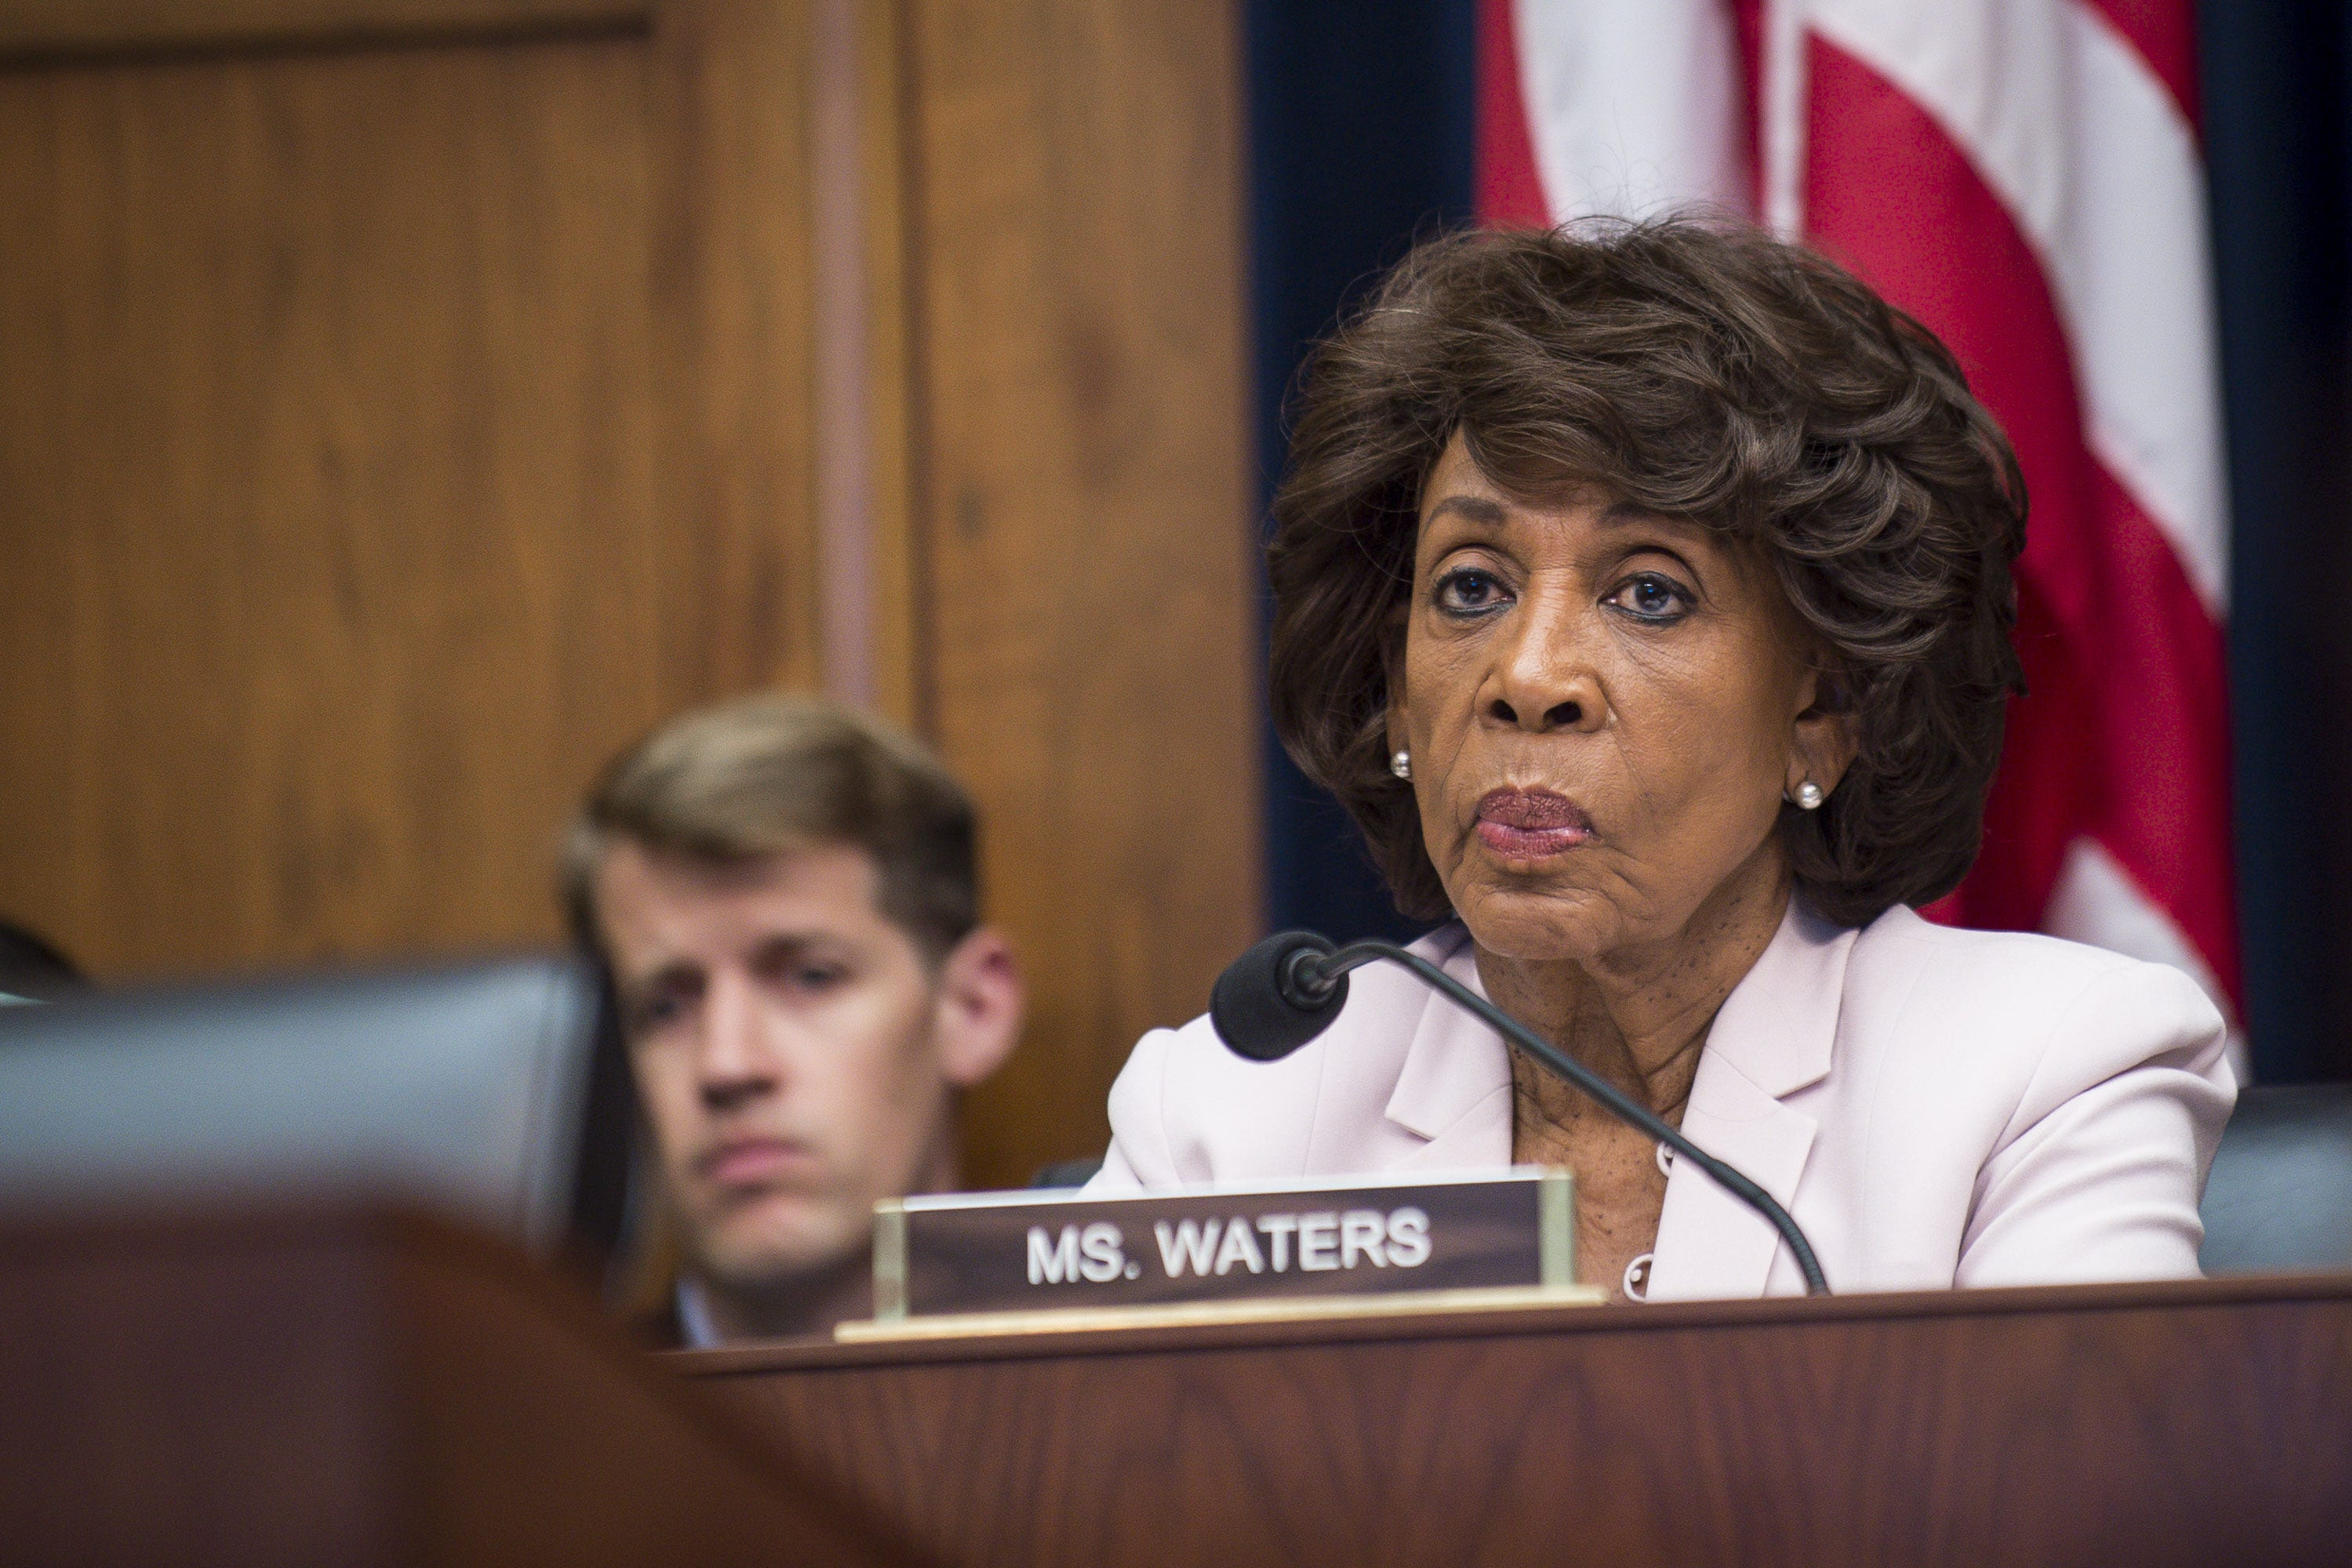 636372684320596629 GTY 813339478 92322849 rep maxine waters prompts buzz, memes for reclaiming her time